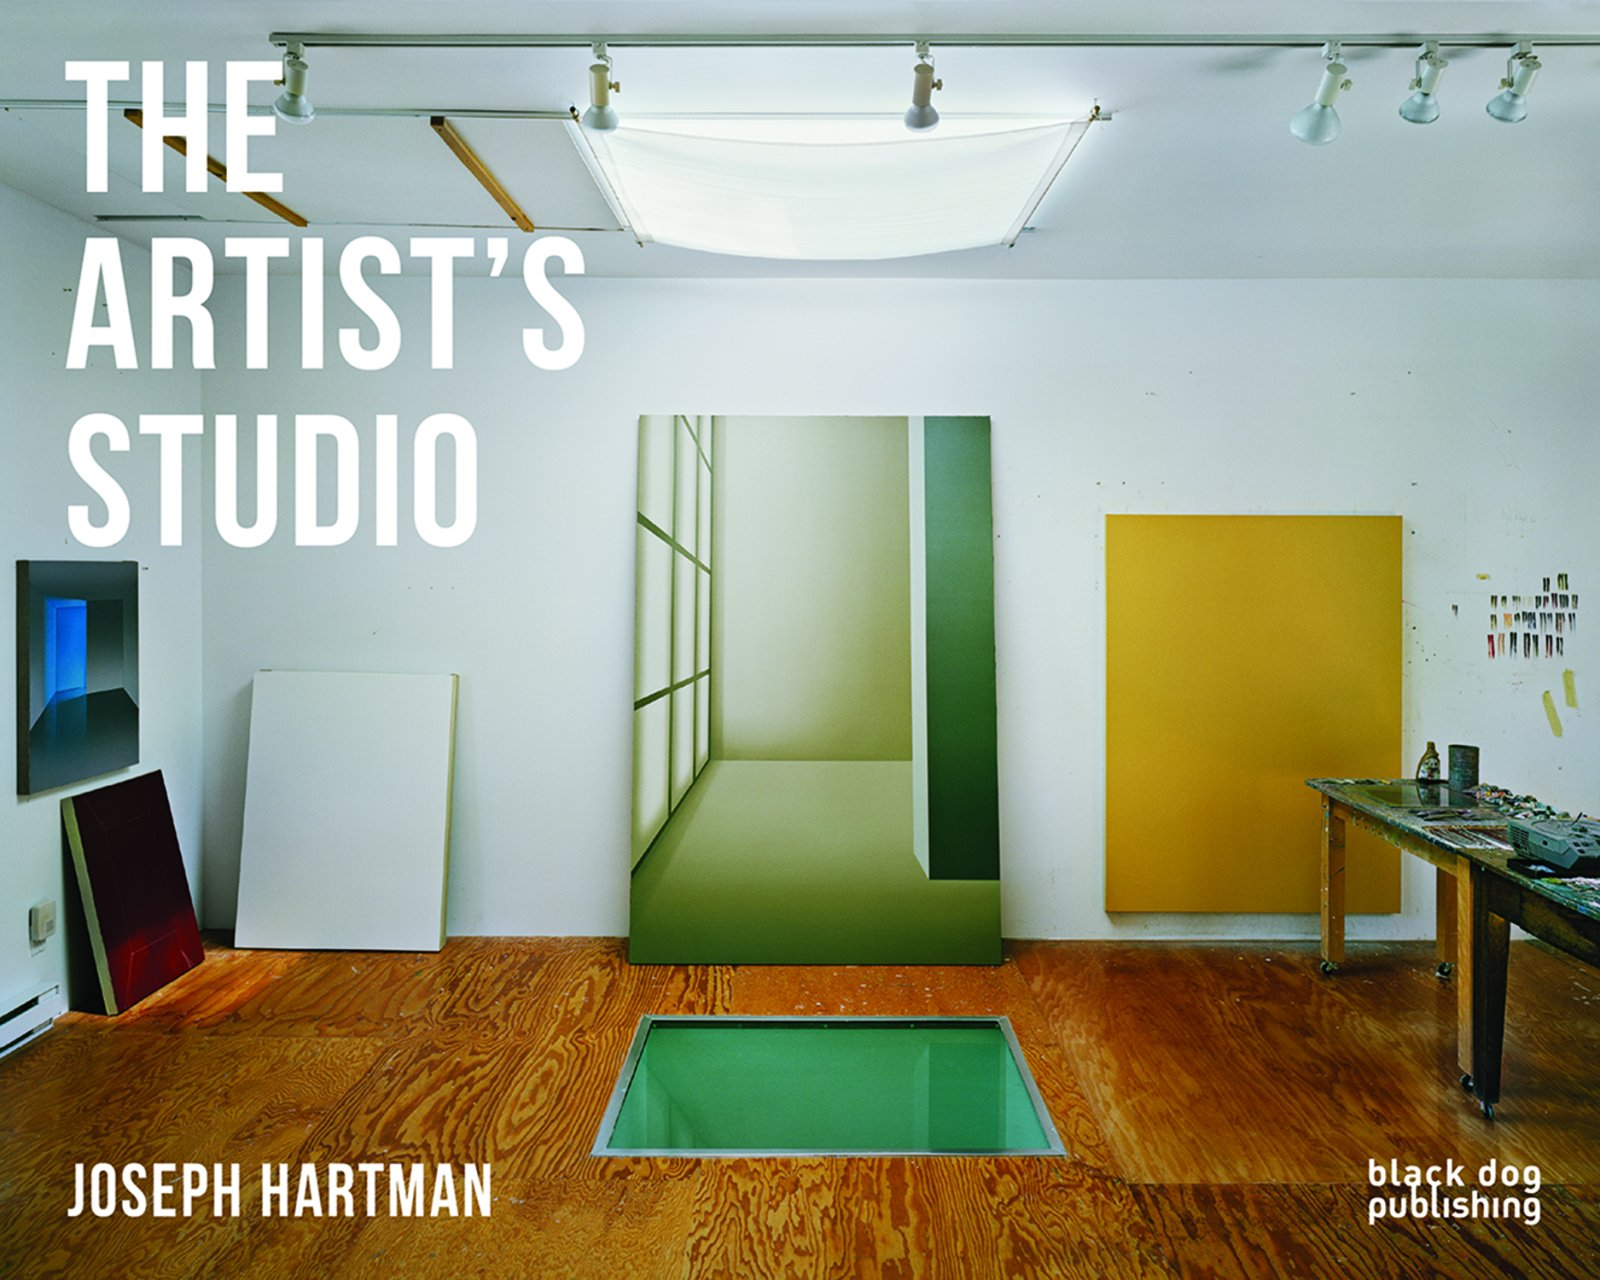 The Artistu0027s Studio: Joseph Hartman: Joseph Hartman: 9781911164203:  Amazon.com: Books